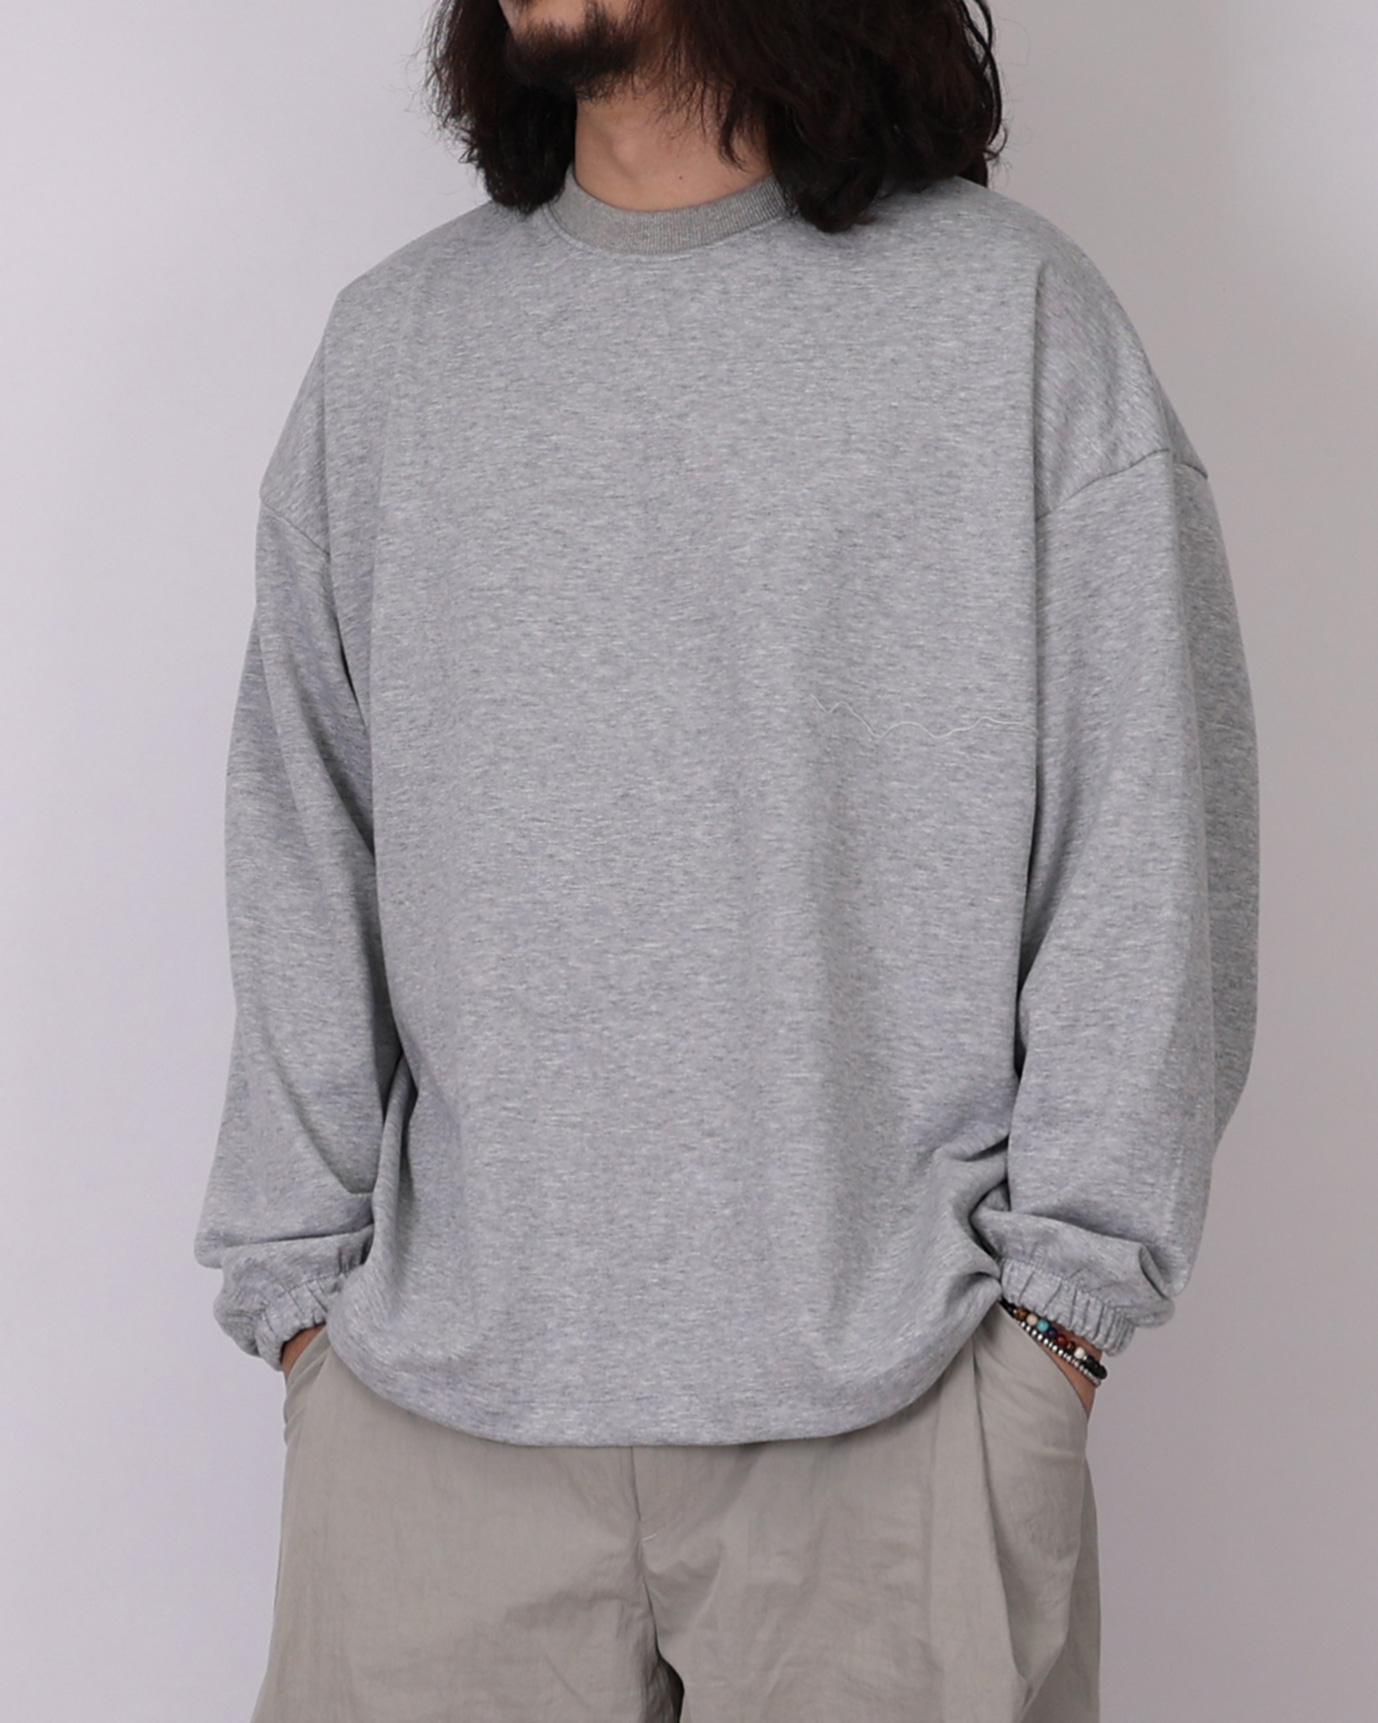 Simple String Long Sleeves (Black/Gray/Light Gray)